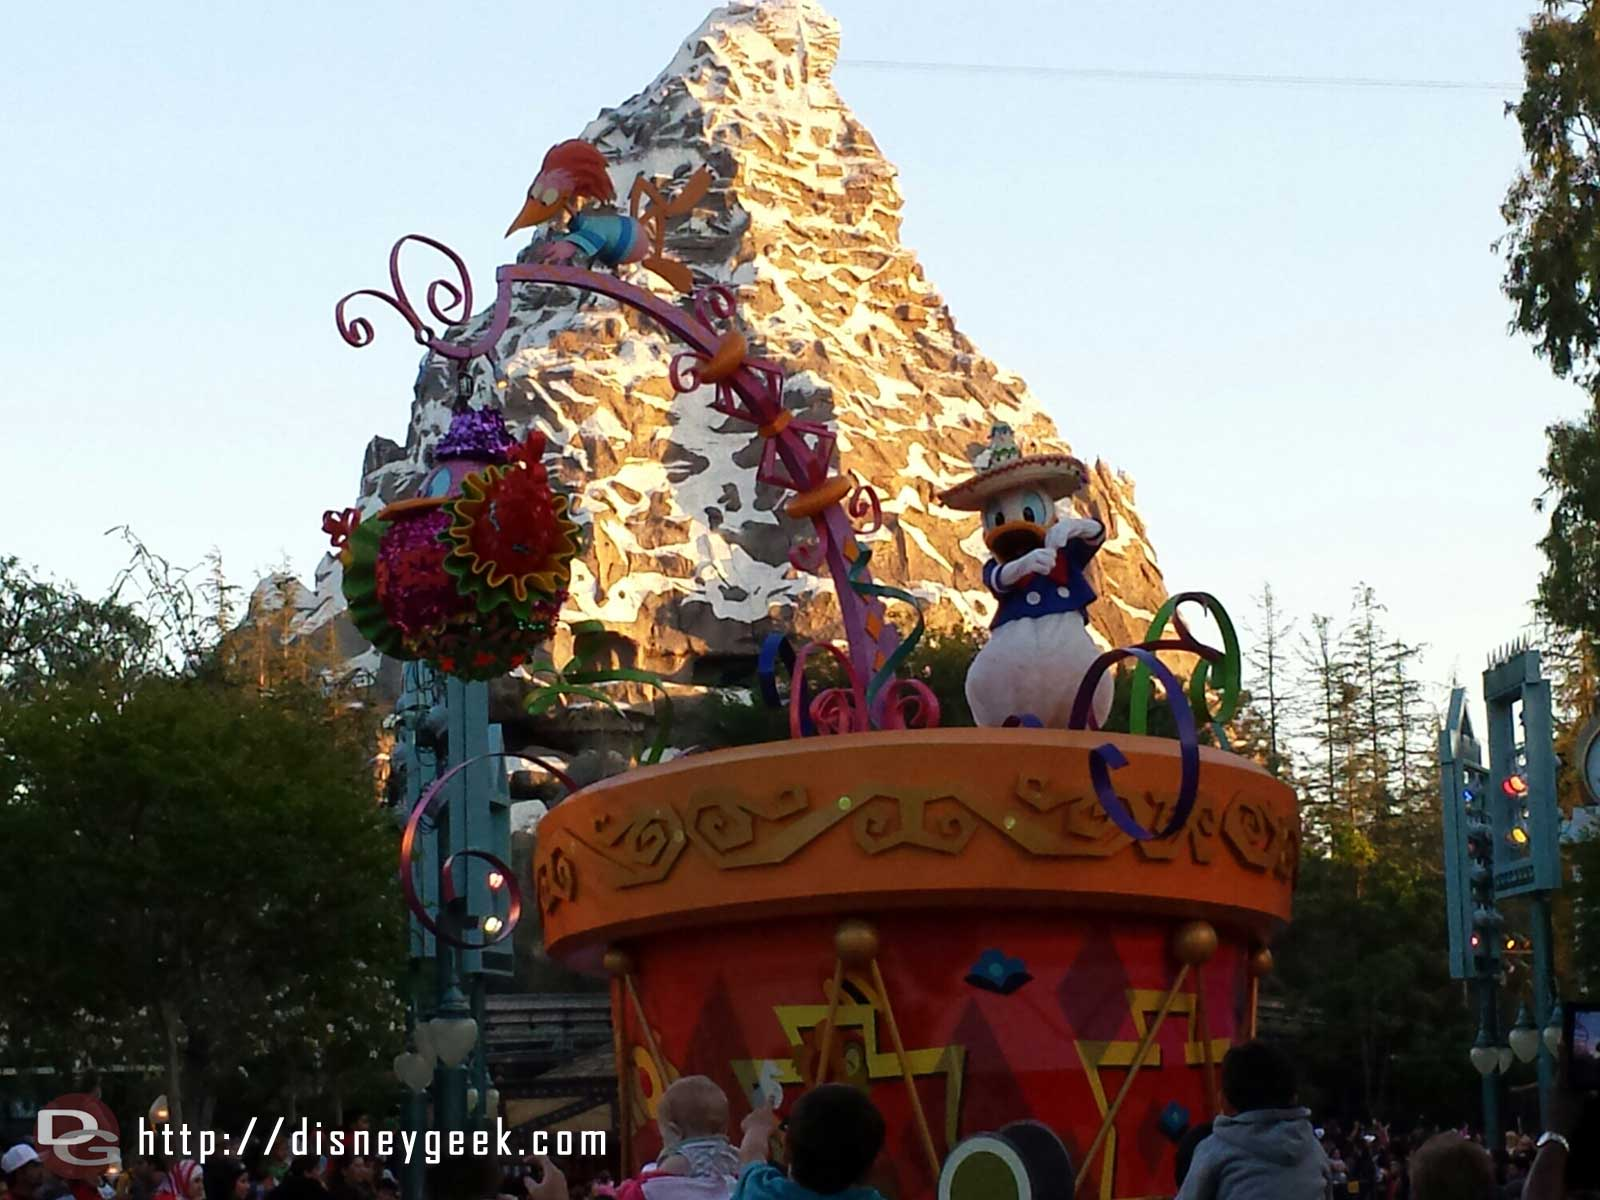 Donald in Soundsational with the Matterhorn in the background